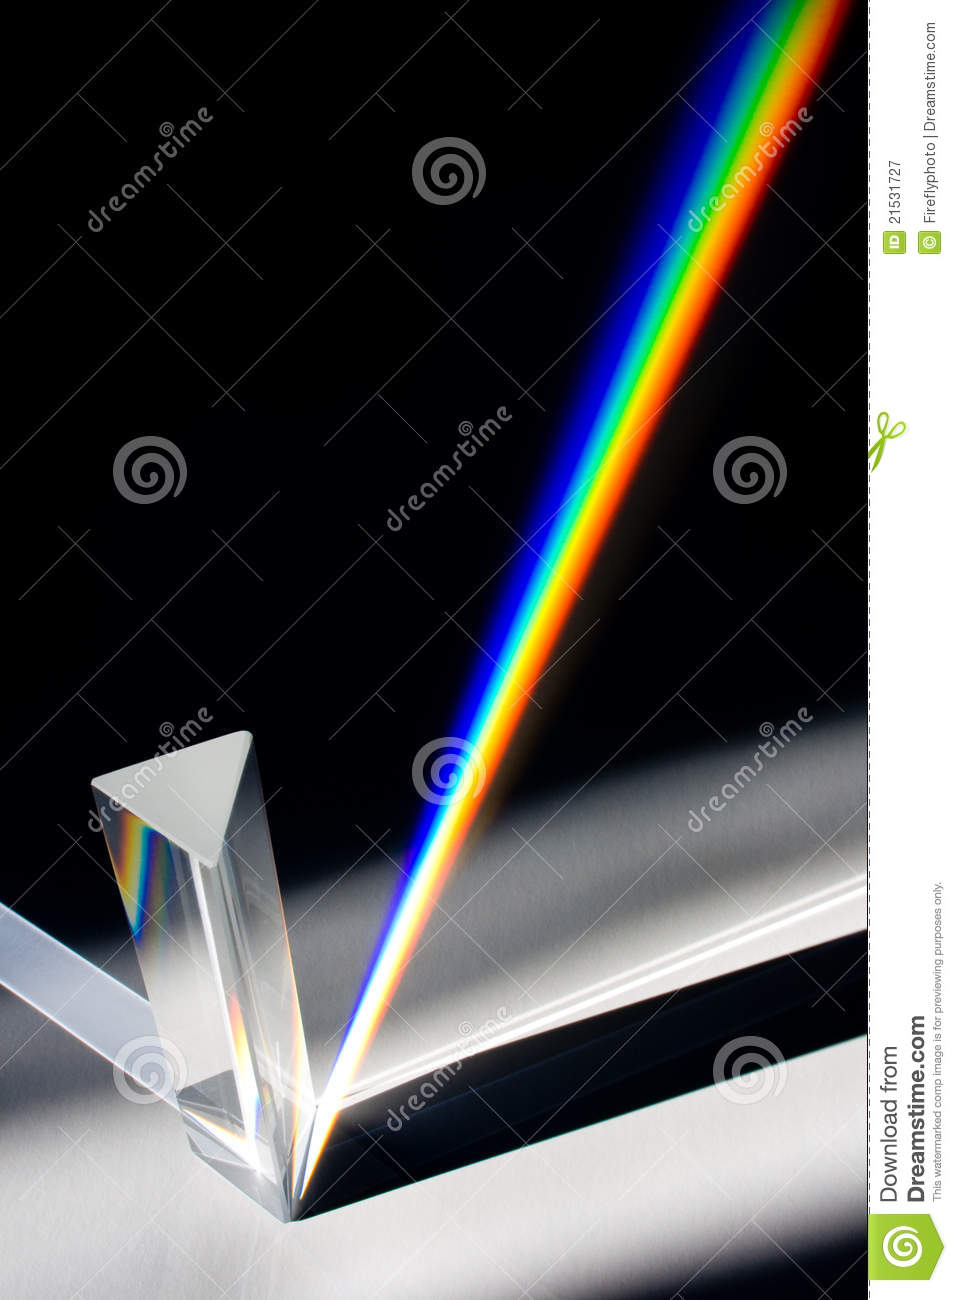 Diffraction of Sunlight through Glass Prism